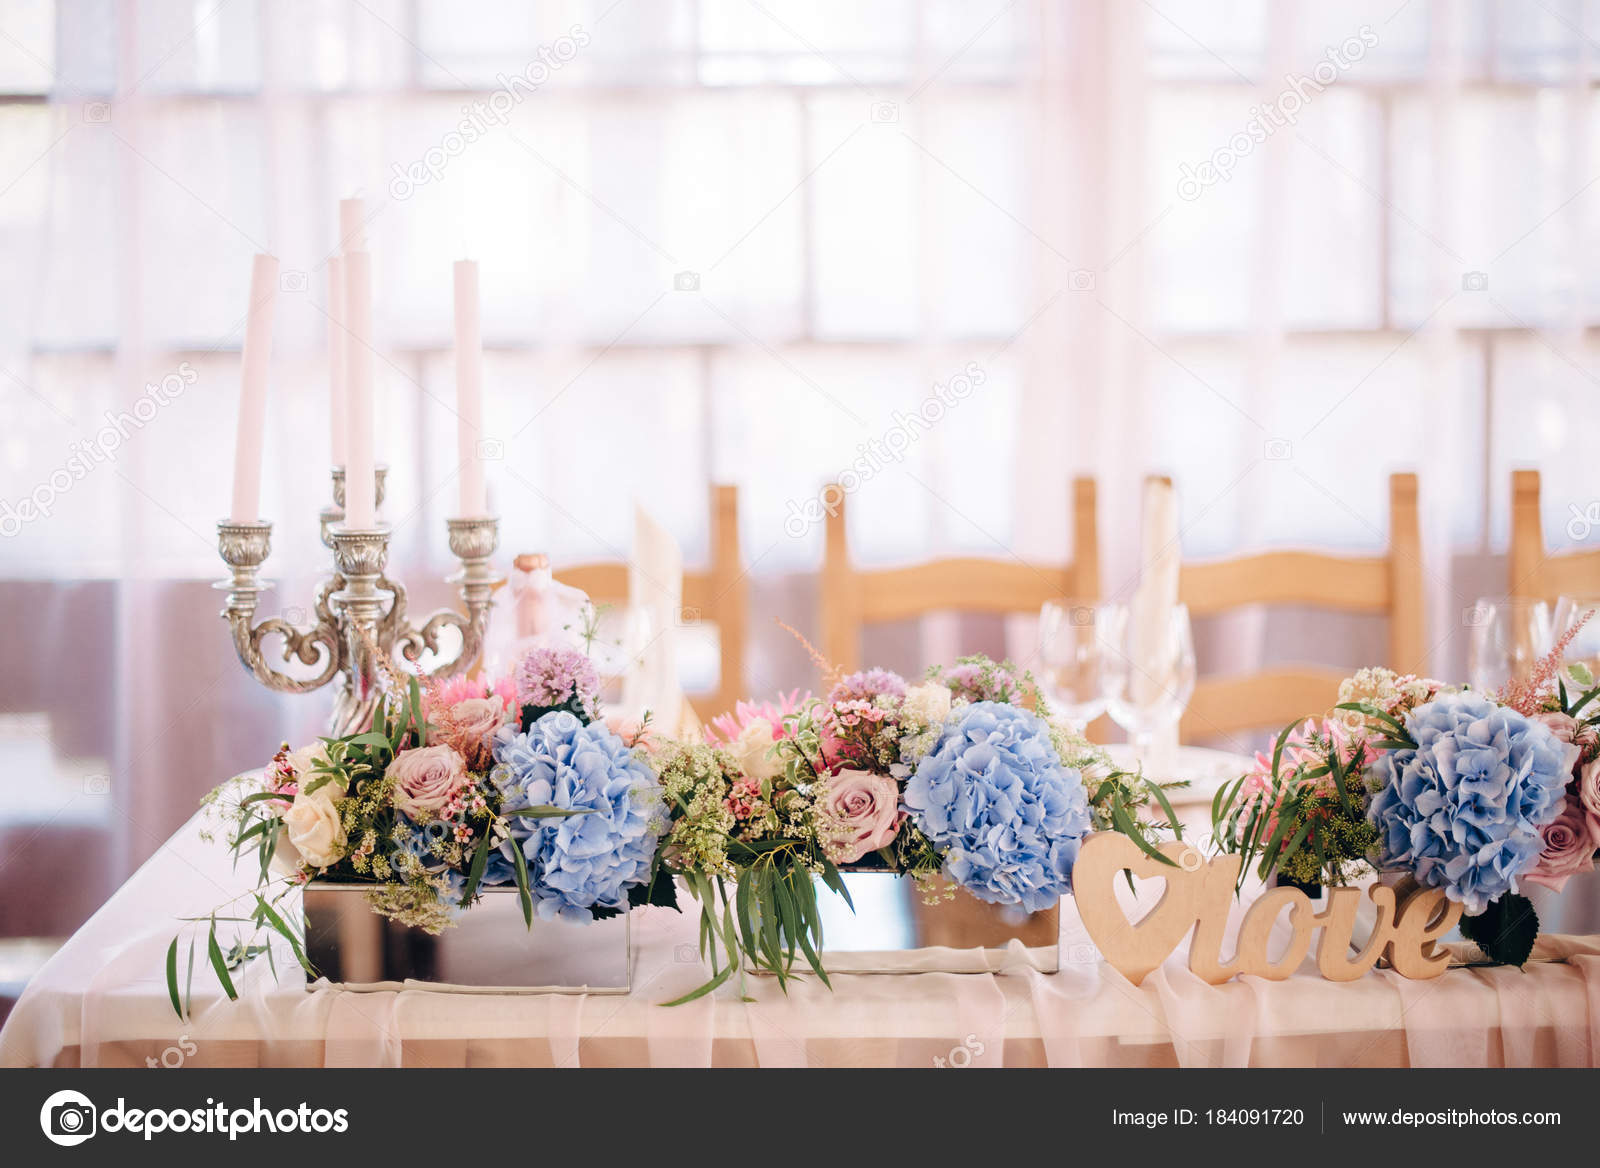 Light Blue And Pink Wedding Theme Wedding Decor With